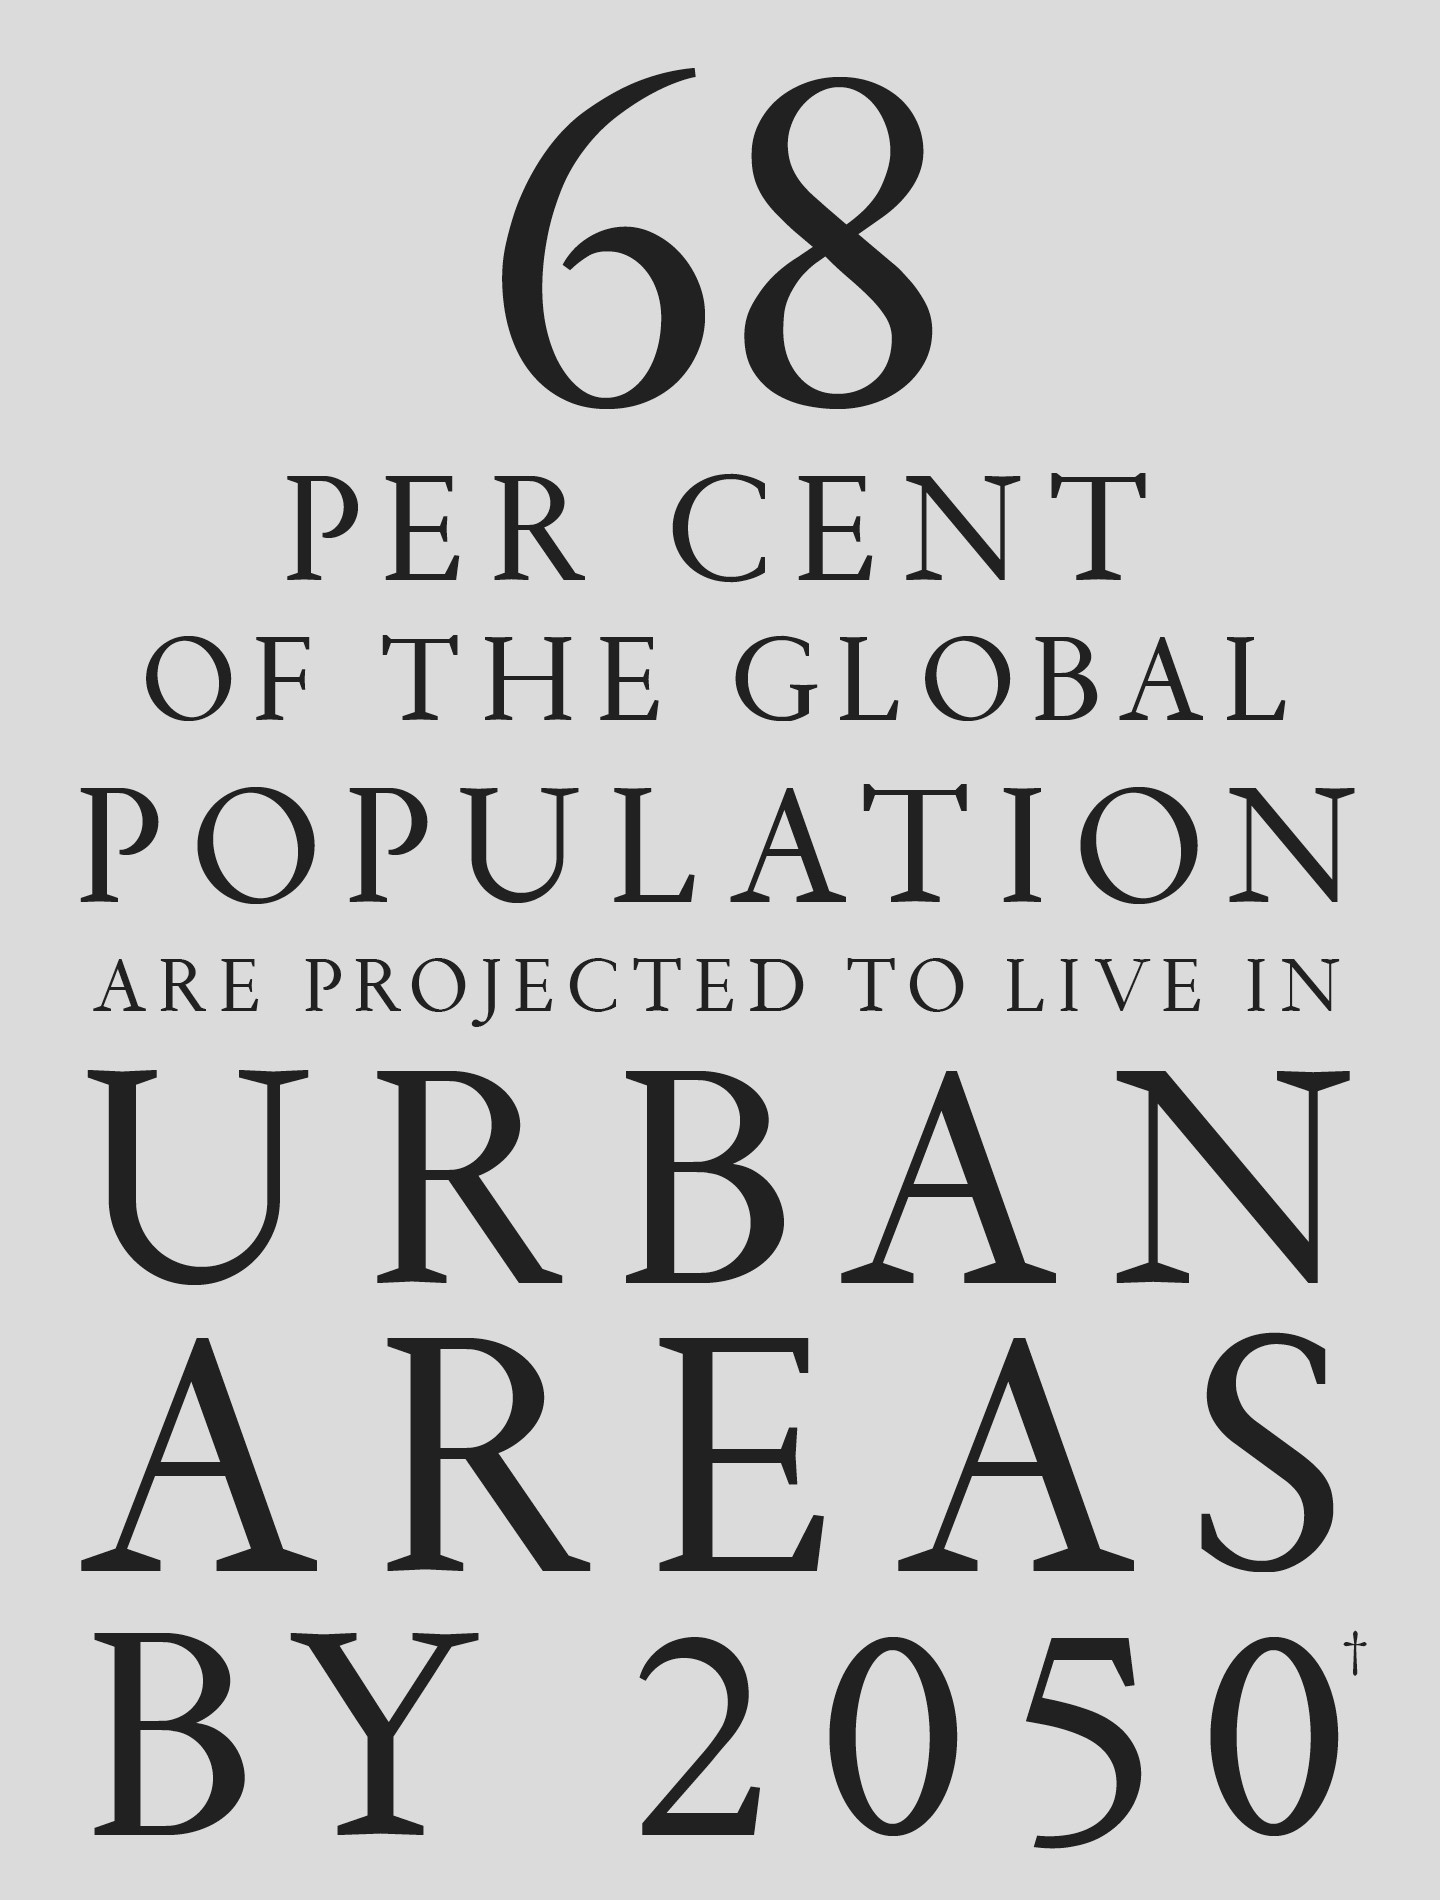 Poster saying: 68% of the global population are projected to live in urban areas by 2050